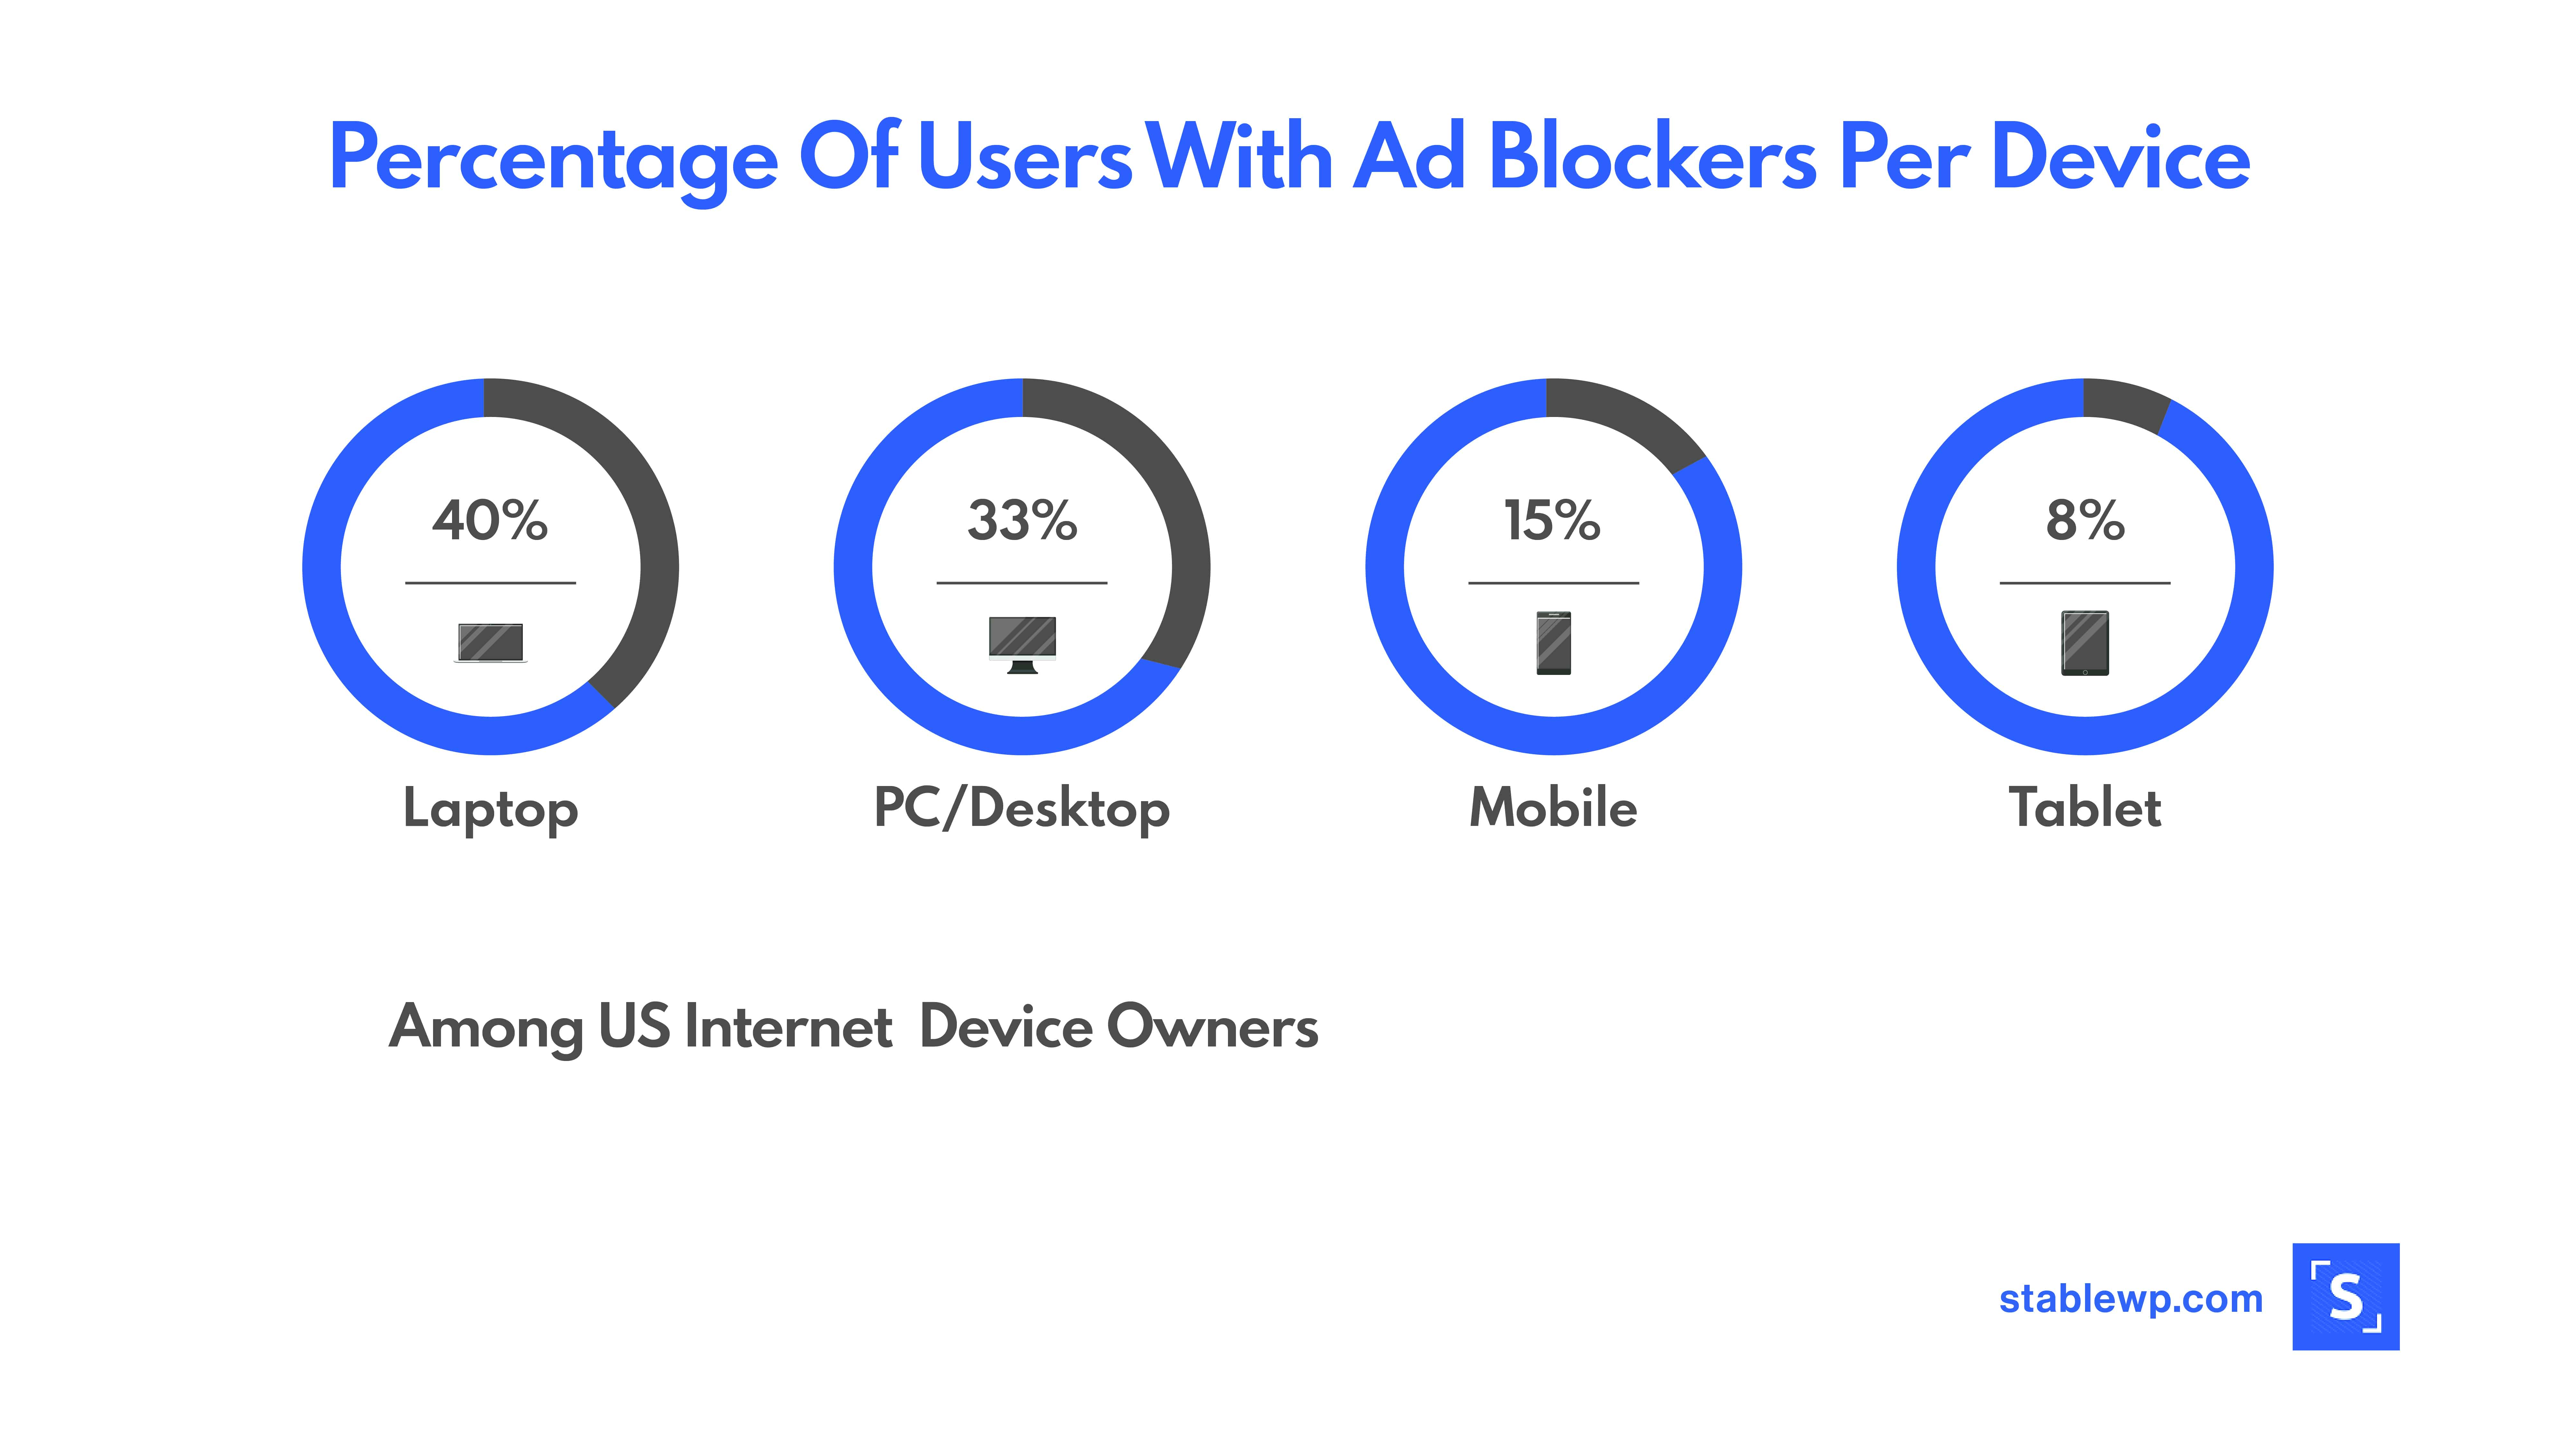 Usage of AdBlockers by device